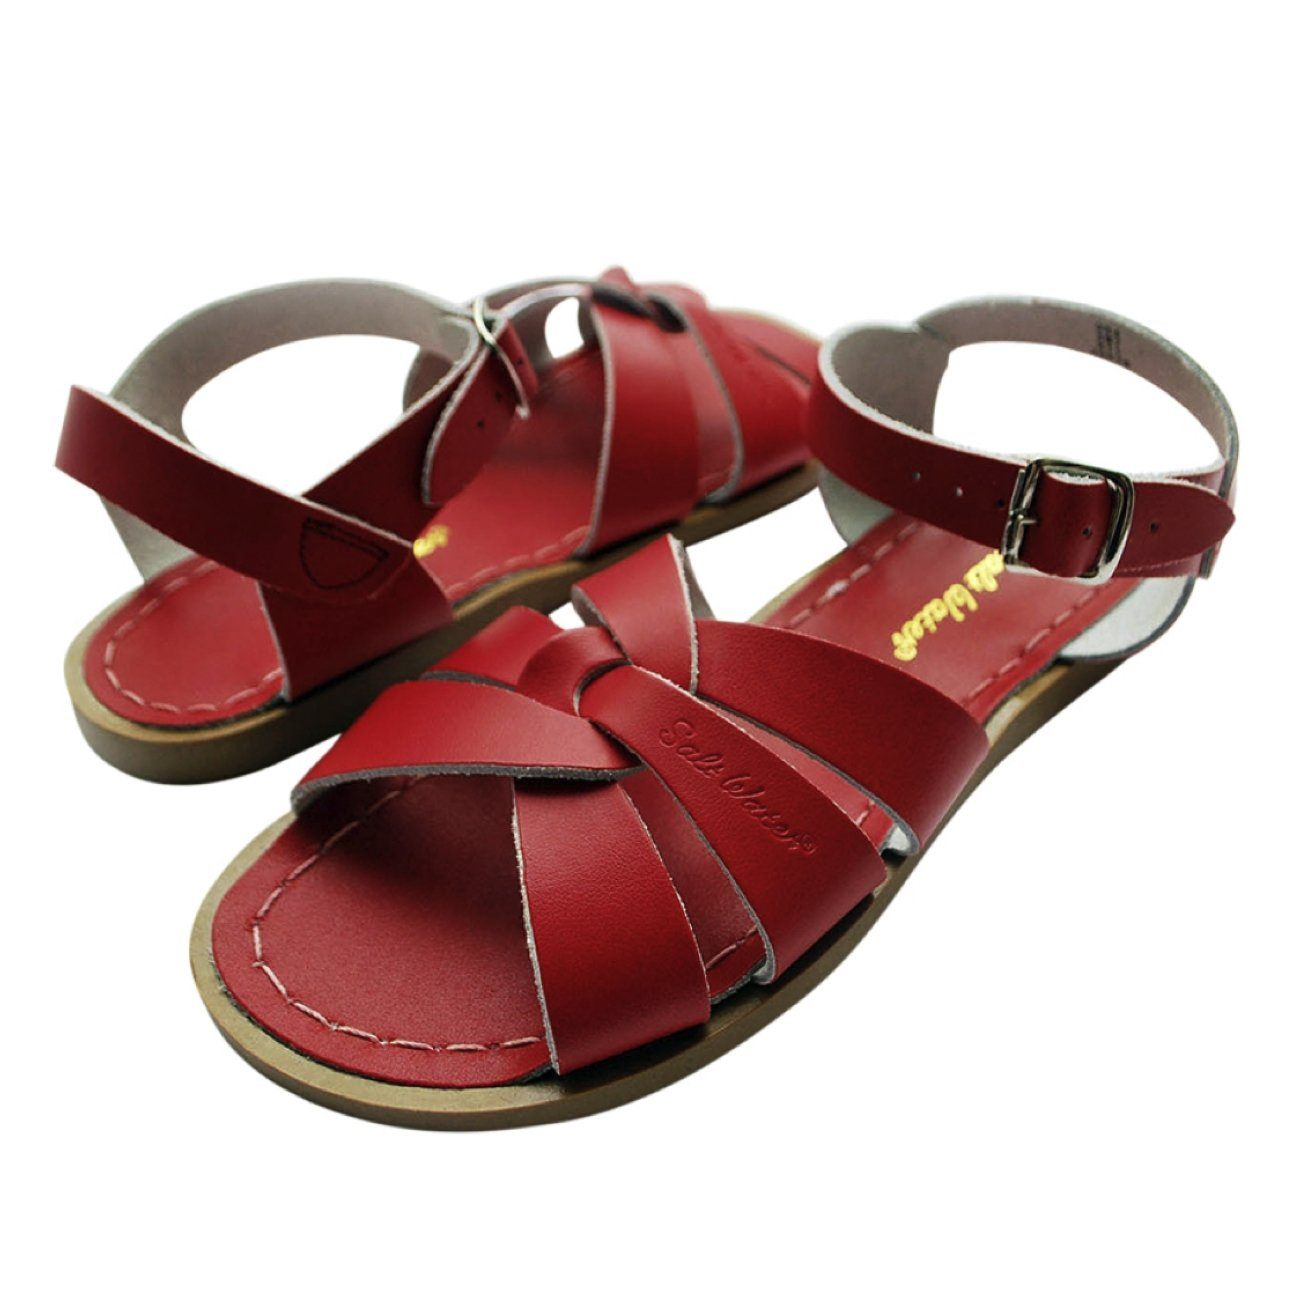 Salt Water Sandals, Original, Child, Red Sandals Salt Water Sandals Red 9